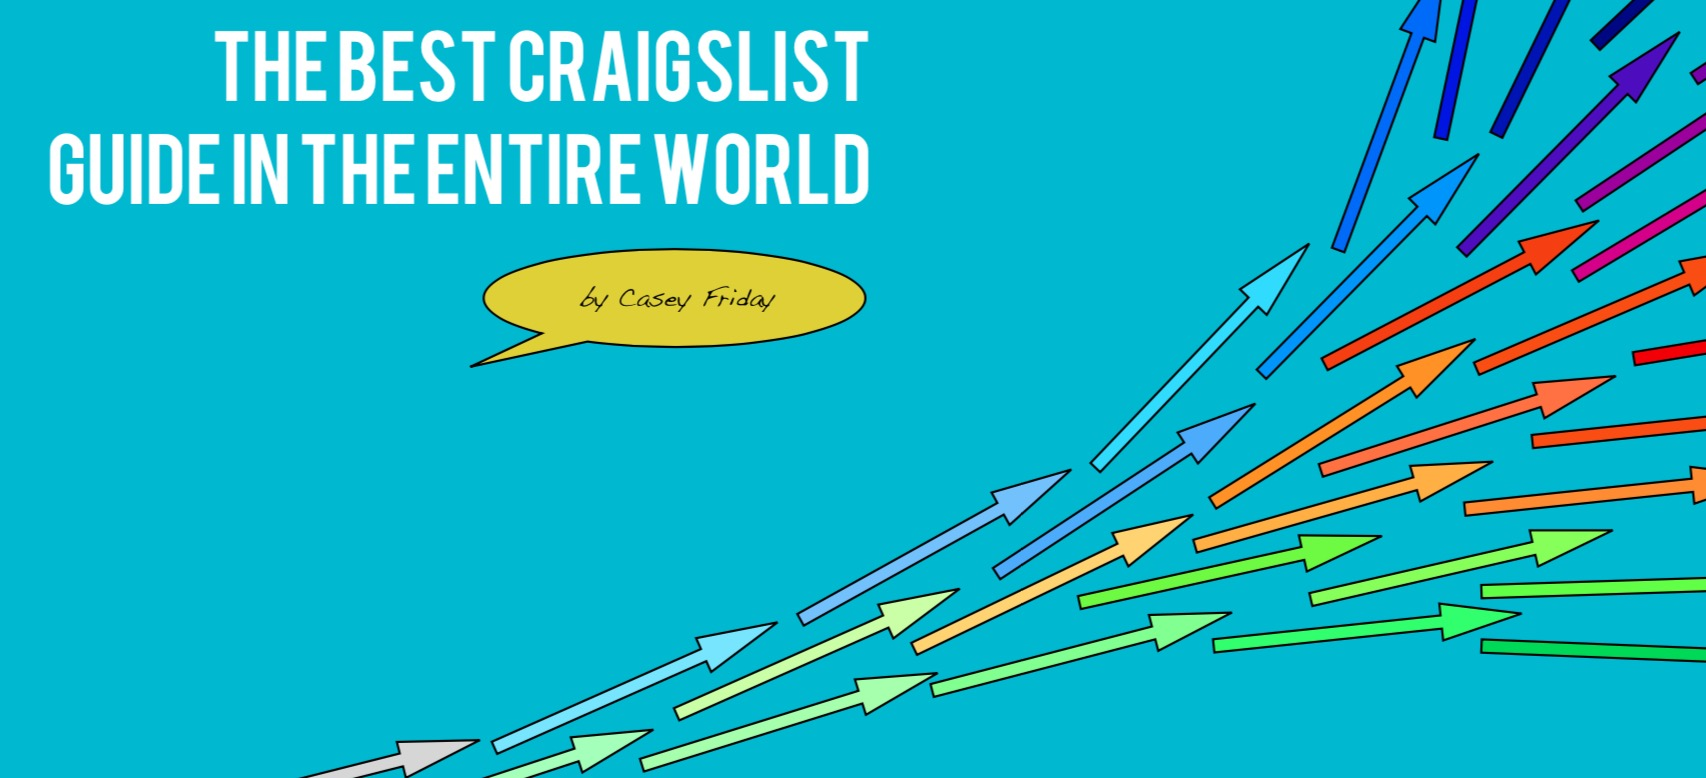 The Best Craigslist Guide in the Entire World - Casey Friday